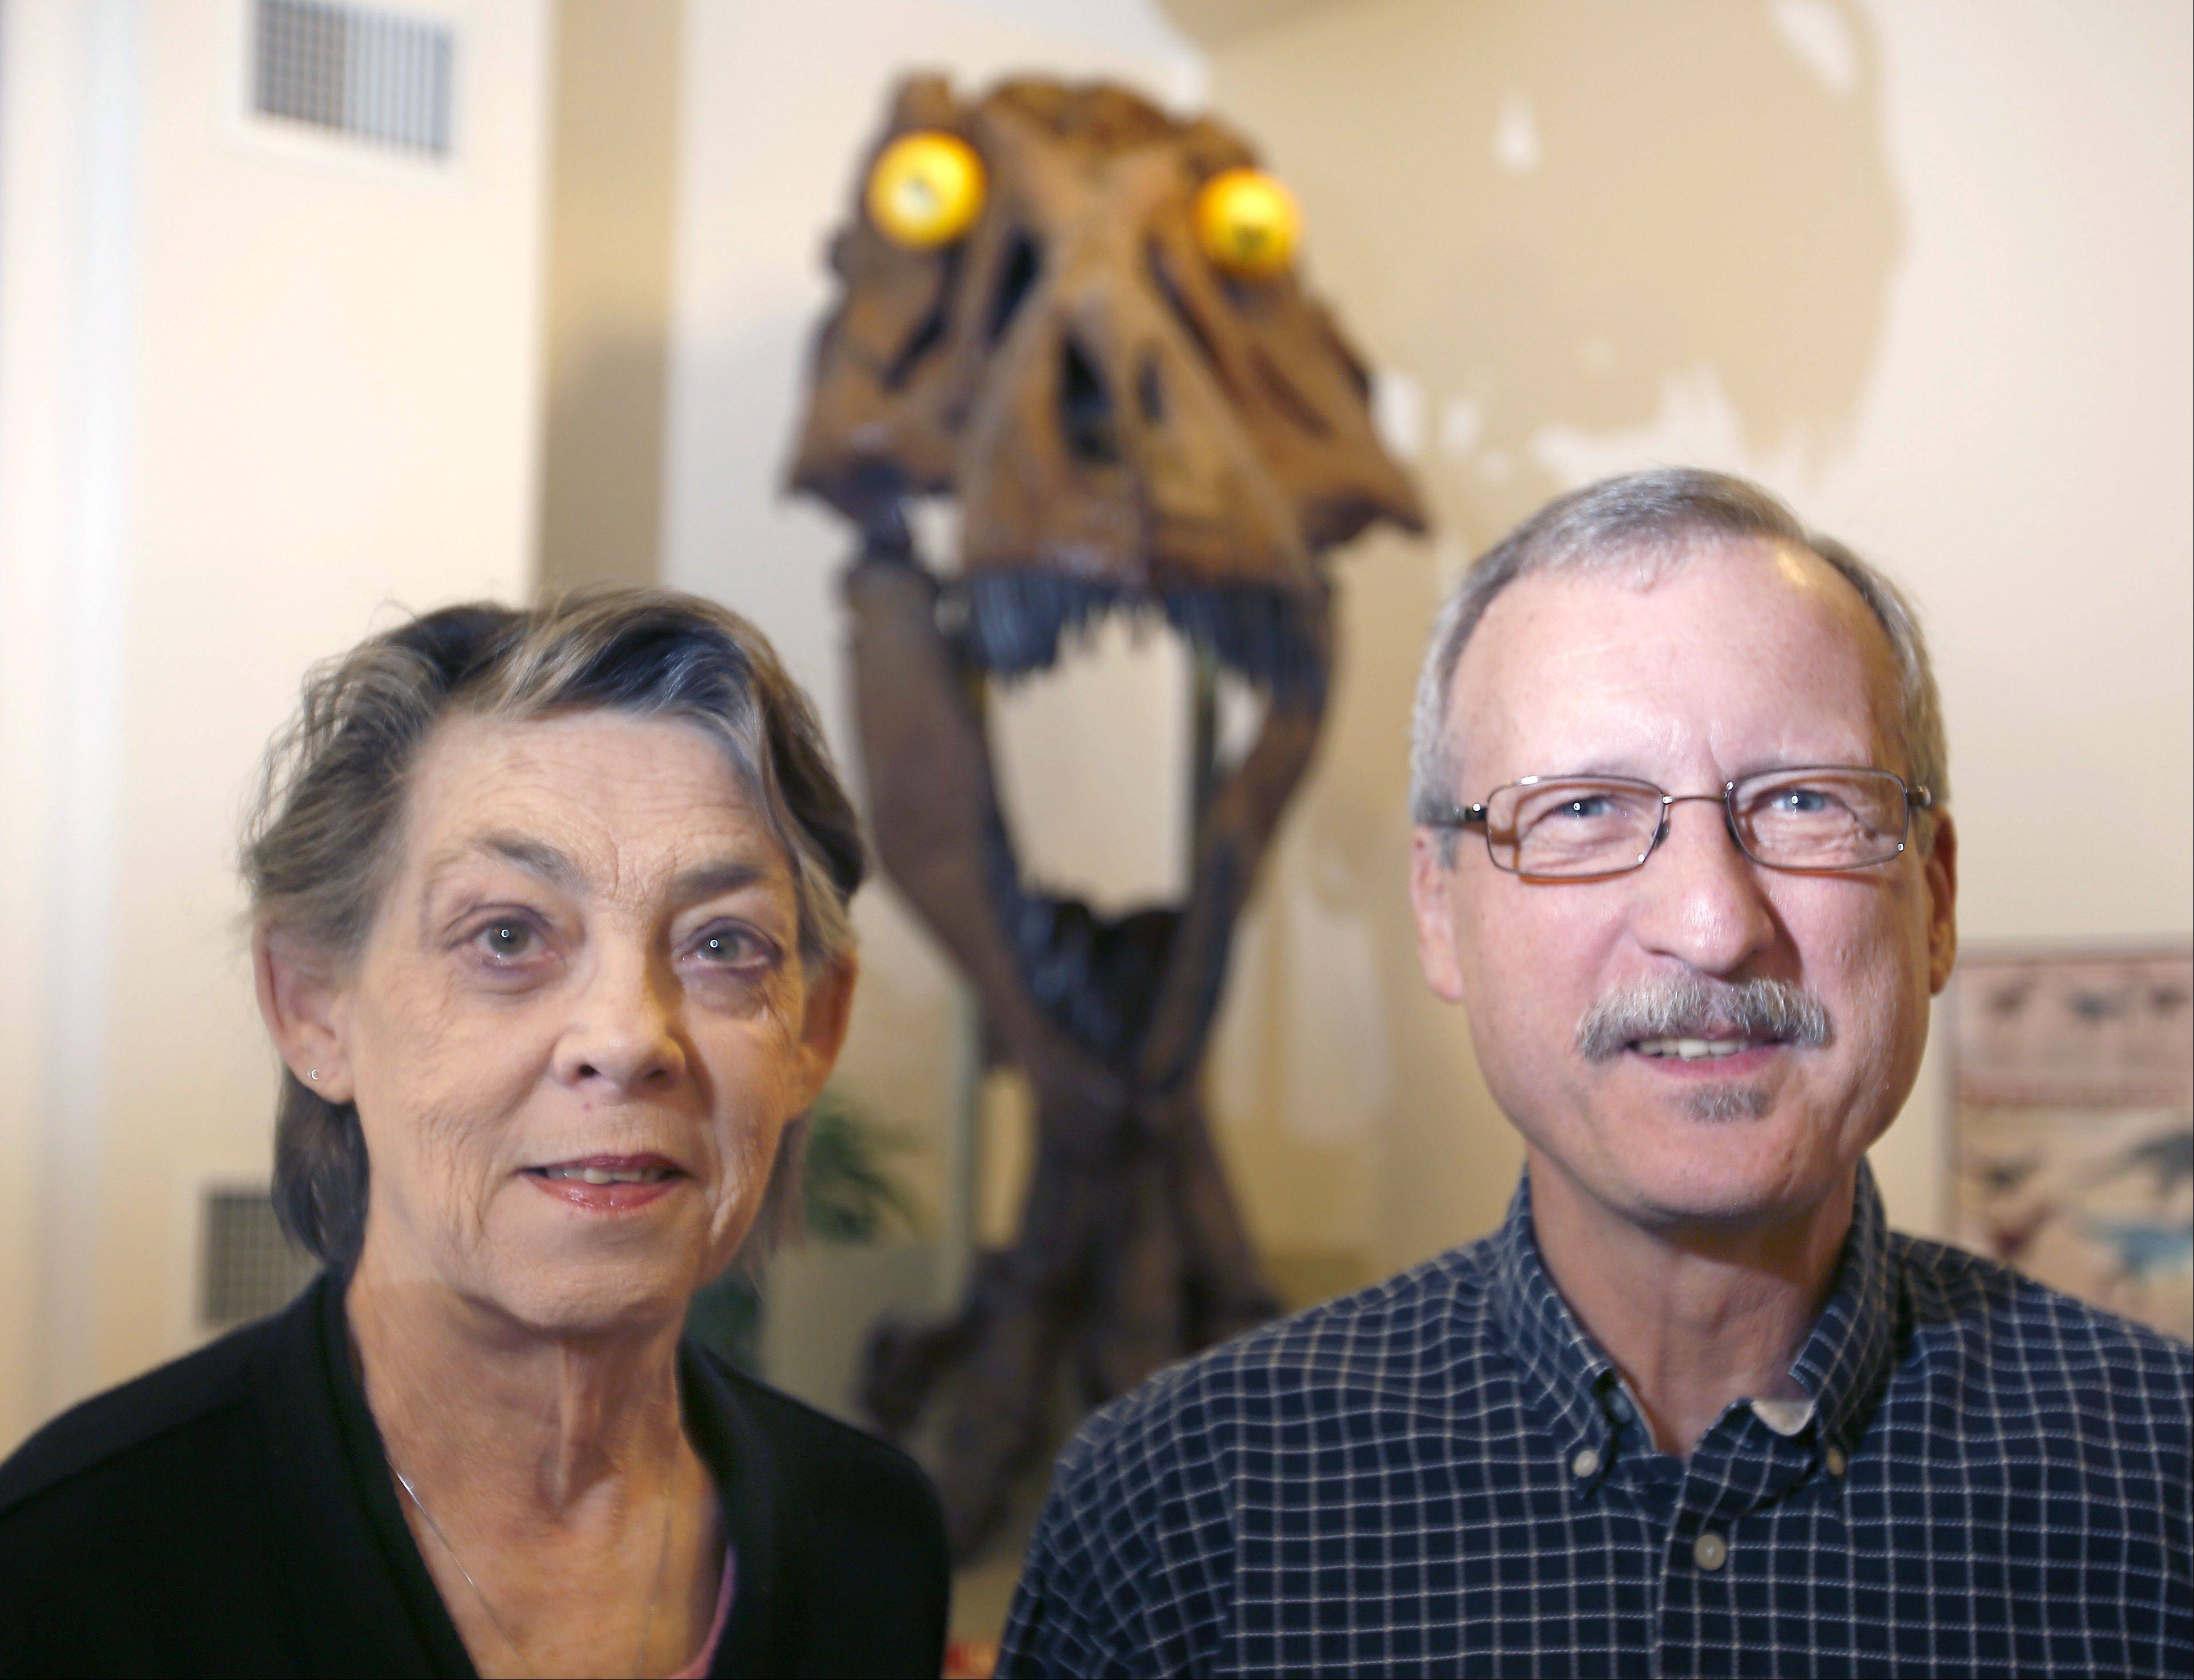 Elgin Public Museum Executive Director Peggie Stromberg and Coordinator Mike McGrath are looking forward to Thursday's Paleontology Pizza Night.